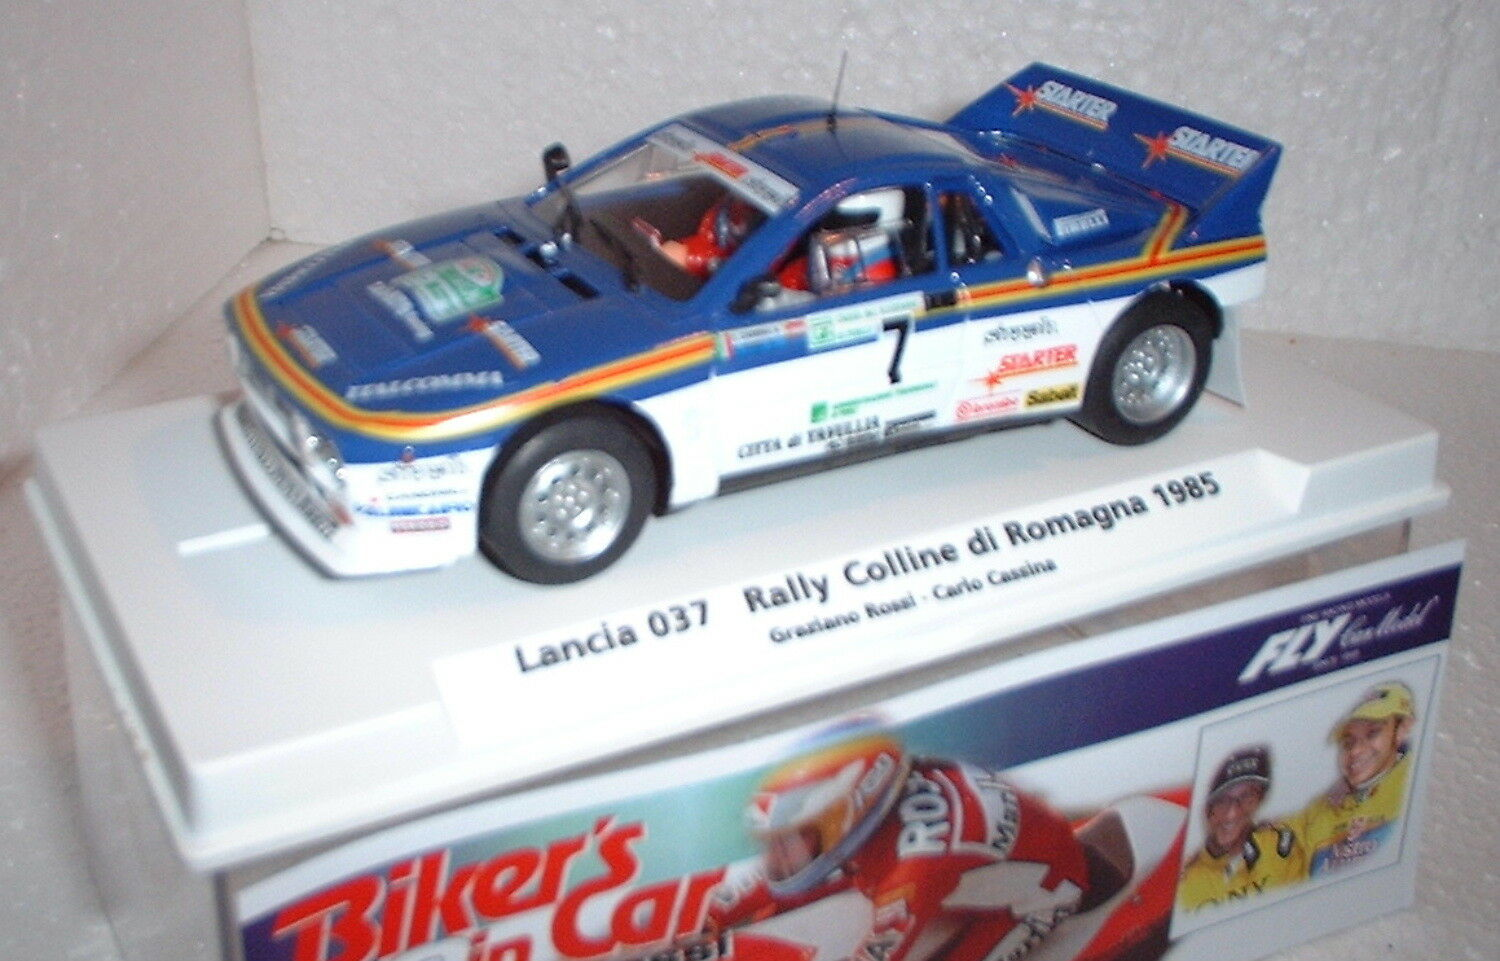 Qq 99103 FLY MOTARDS DANS CAR 02 LANCIA 037 R COLL ROMAGNE '85   7 GRAZZIANO